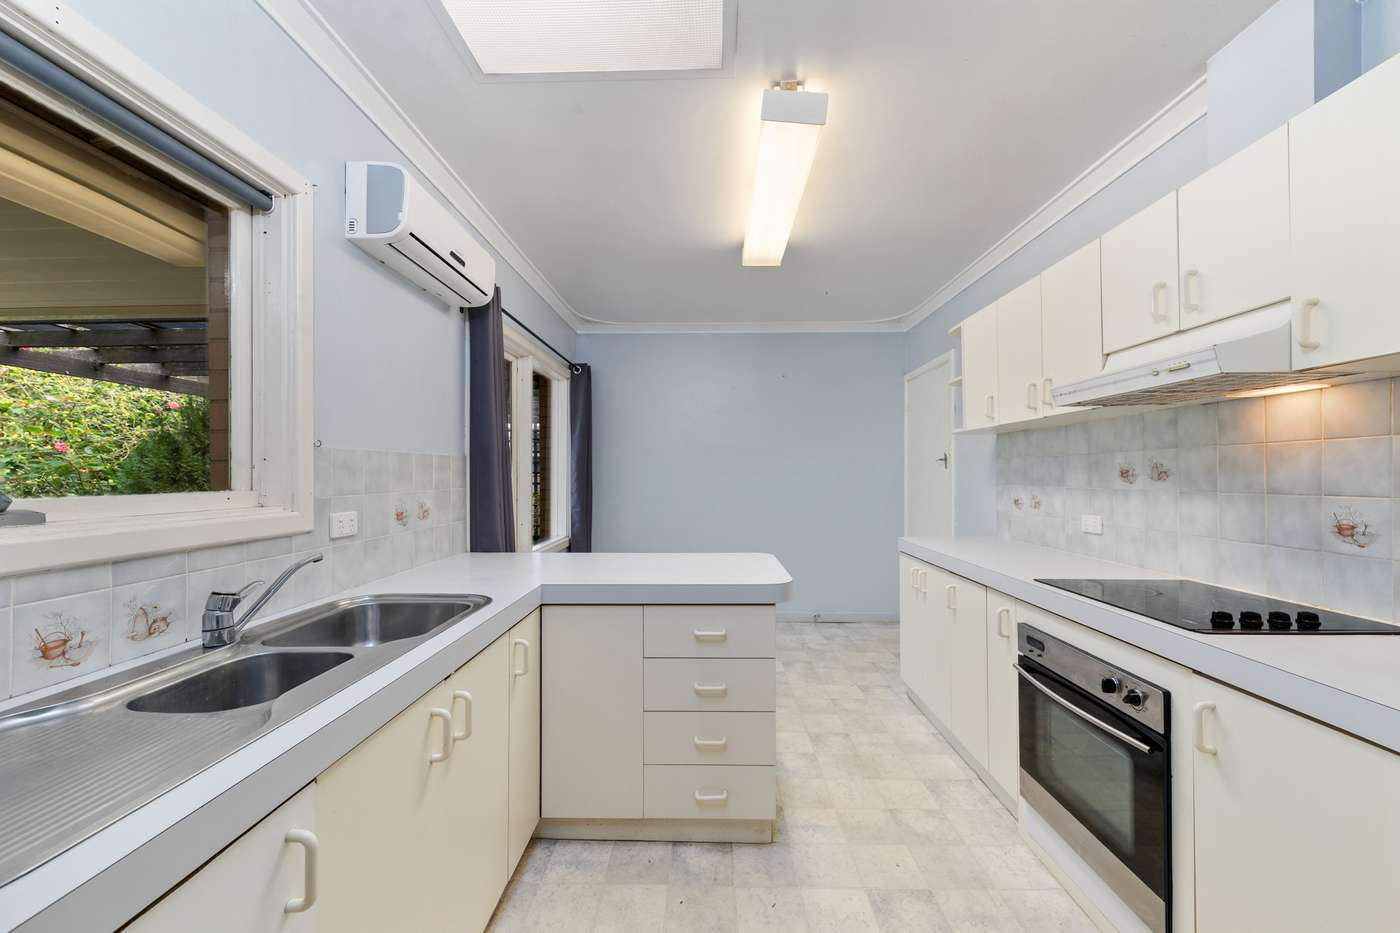 Main view of Homely house listing, 9 Connaught St, Forrestfield, WA 6058